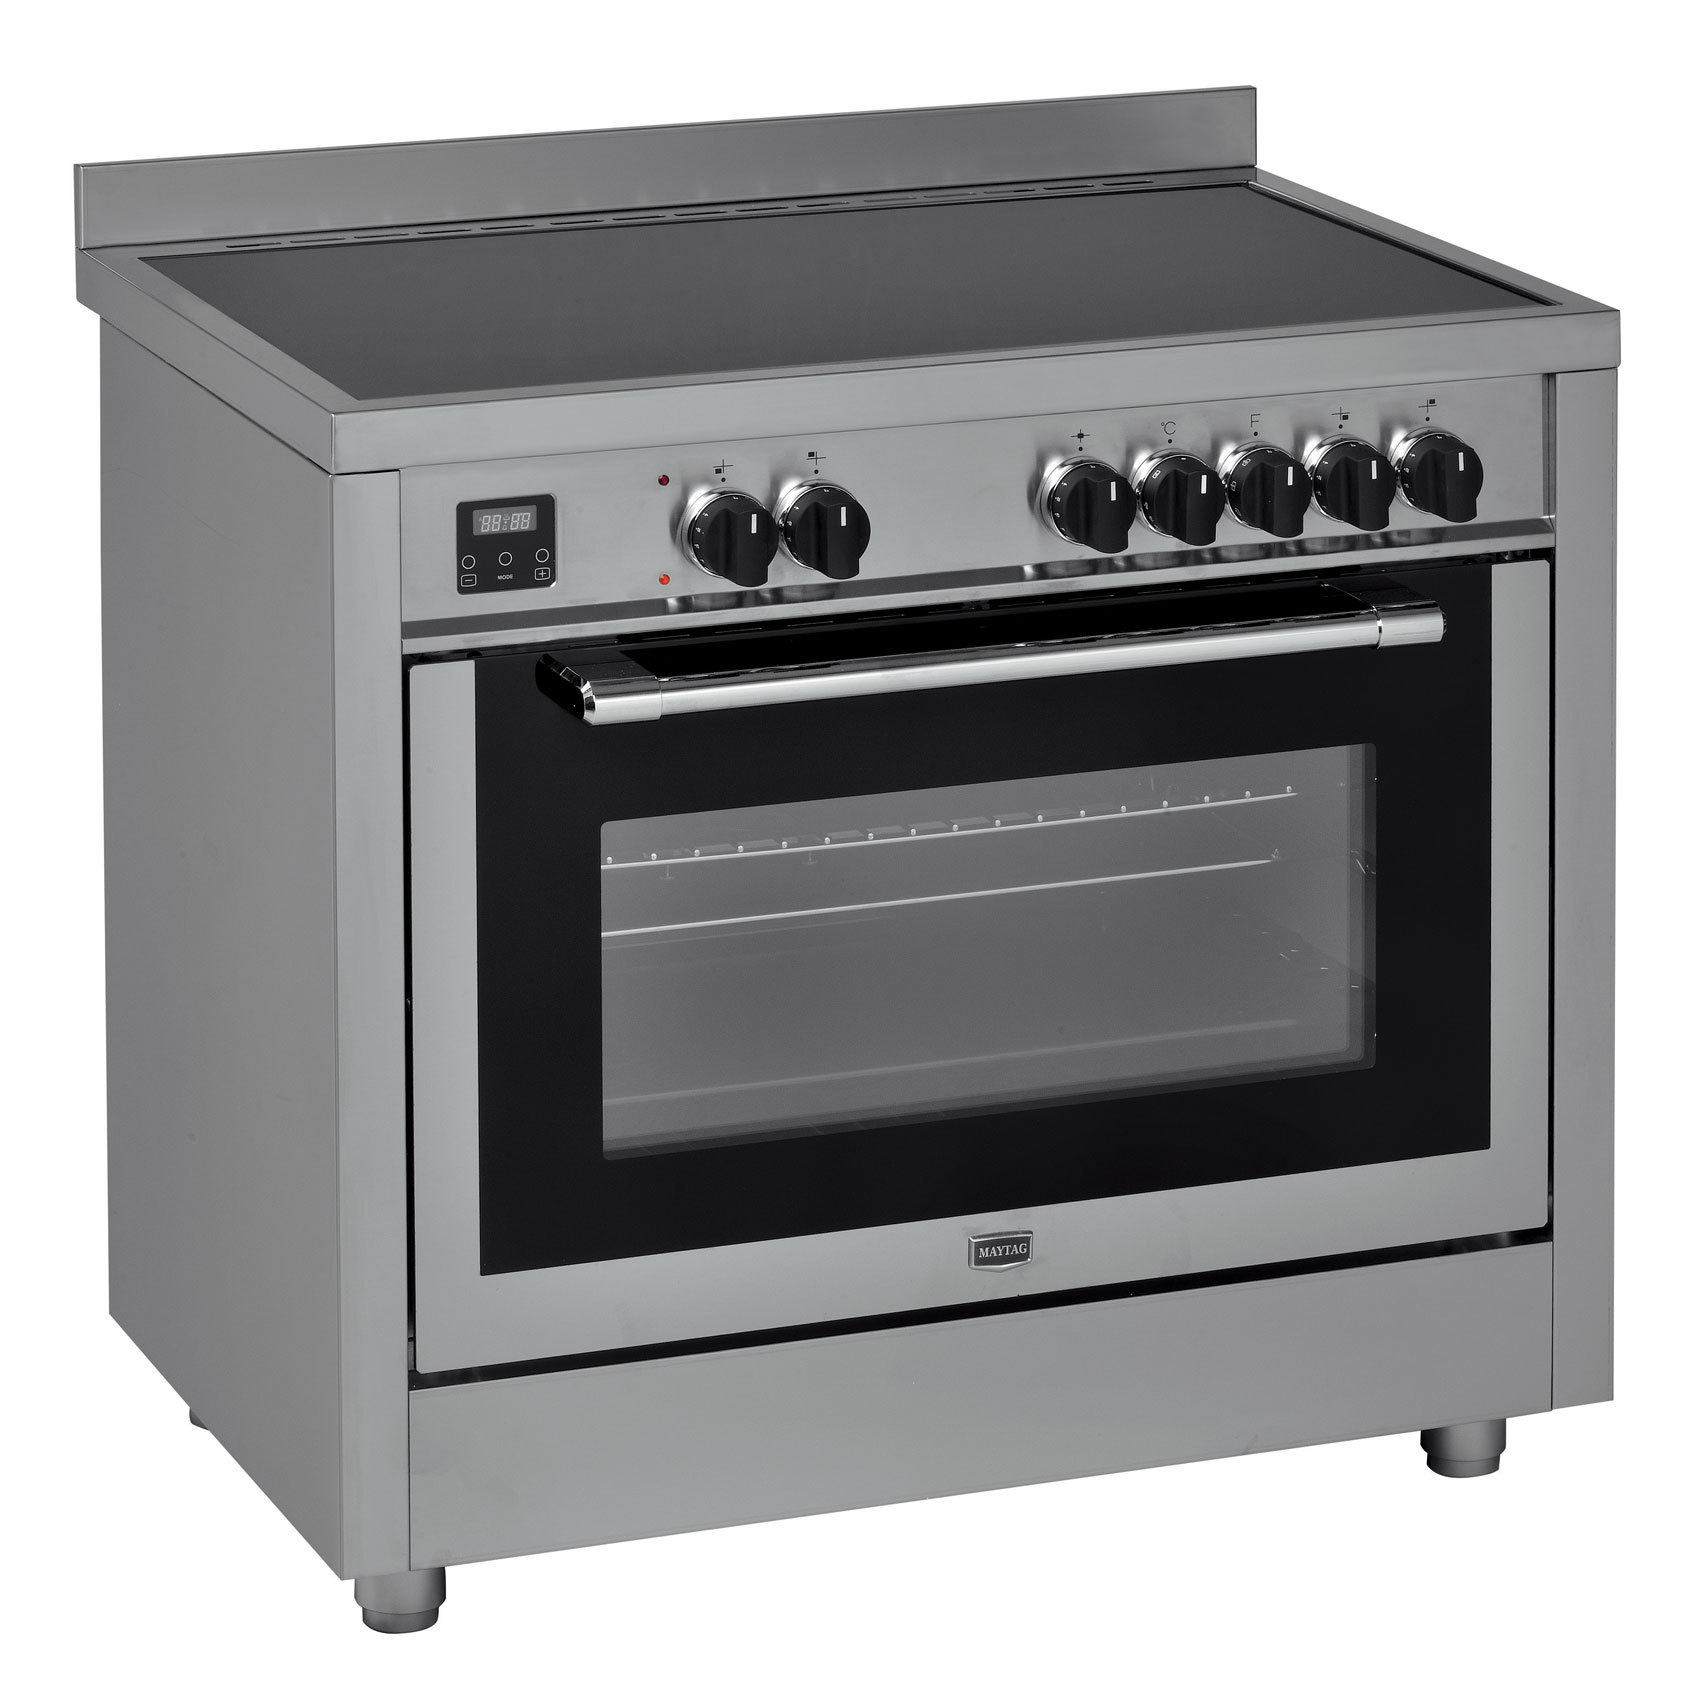 MAYTAG E-COOKER ACM406 90X60CM